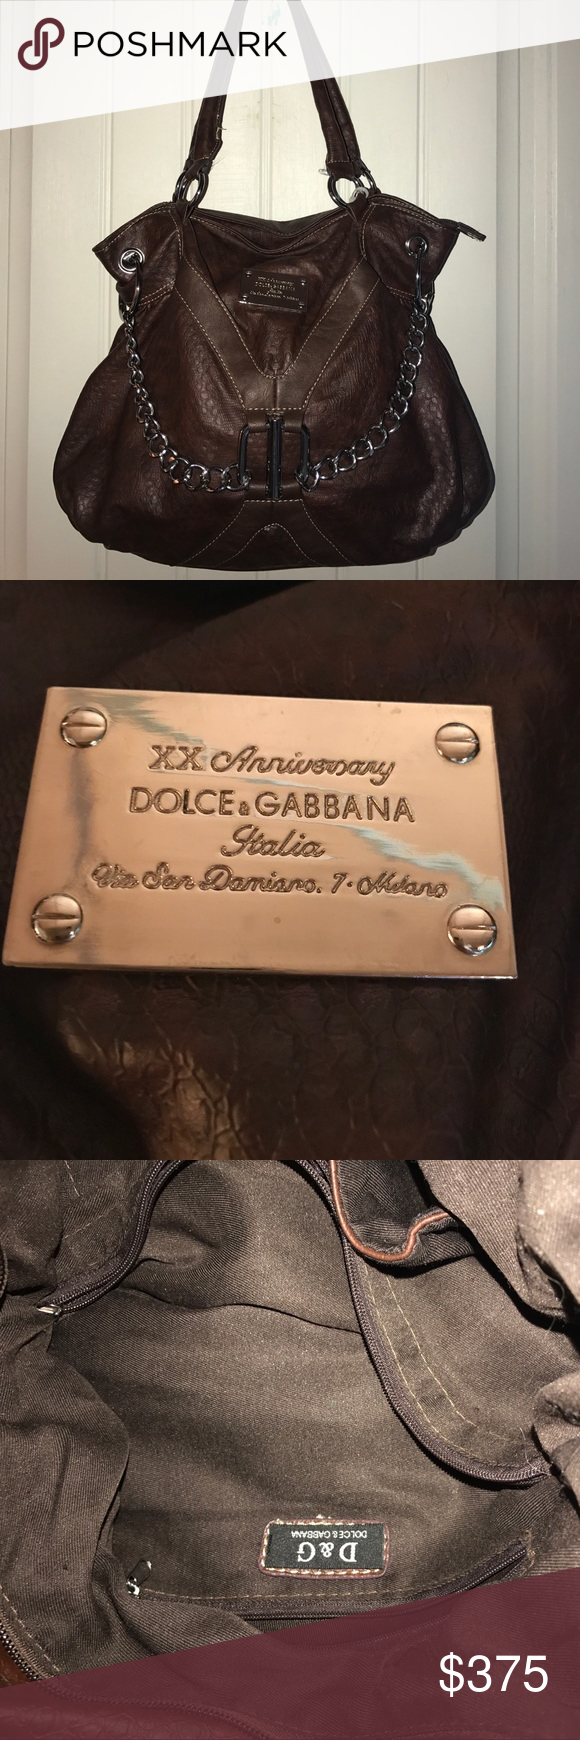 Dolce  amp  Gabbana XX ANNIVERSARY SHOULDER BAG Dolce  amp  Gabbana 20th  anniversary shoulder bag 272b29a9fcd2c